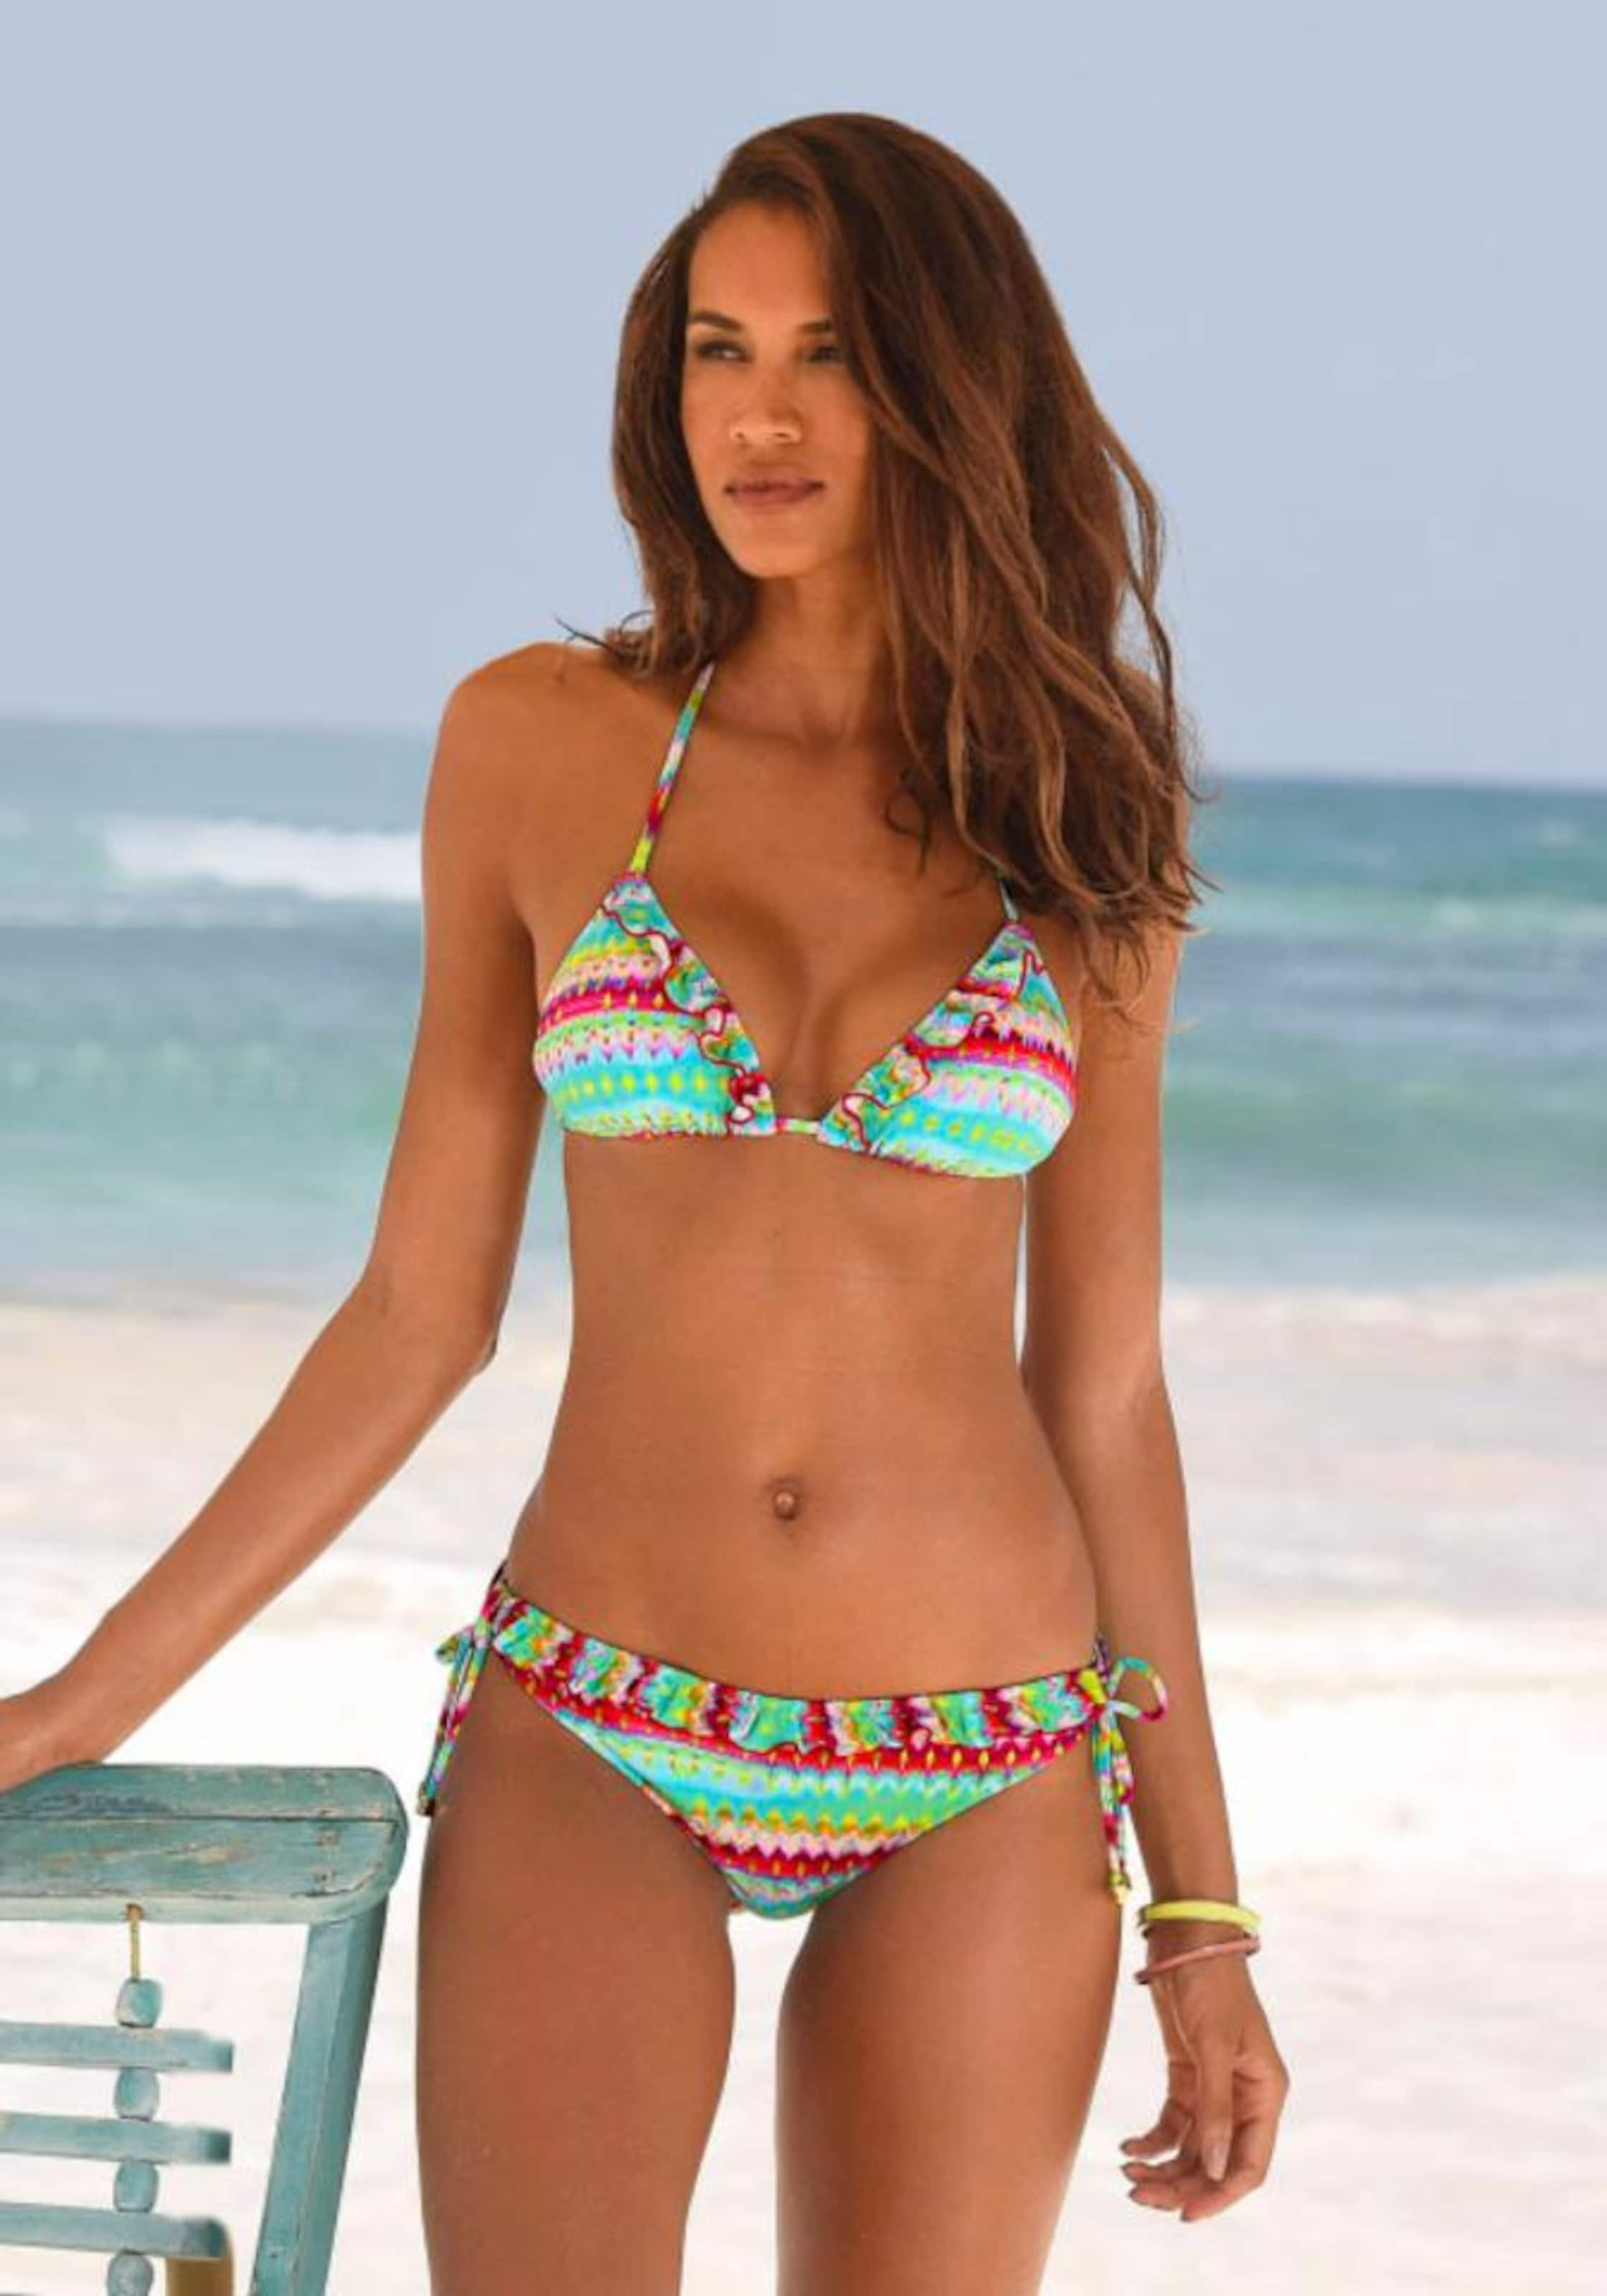 Bikini Homeboy AquaMischfarben Beach Bikini Homeboy In Beach vN8w0mOn